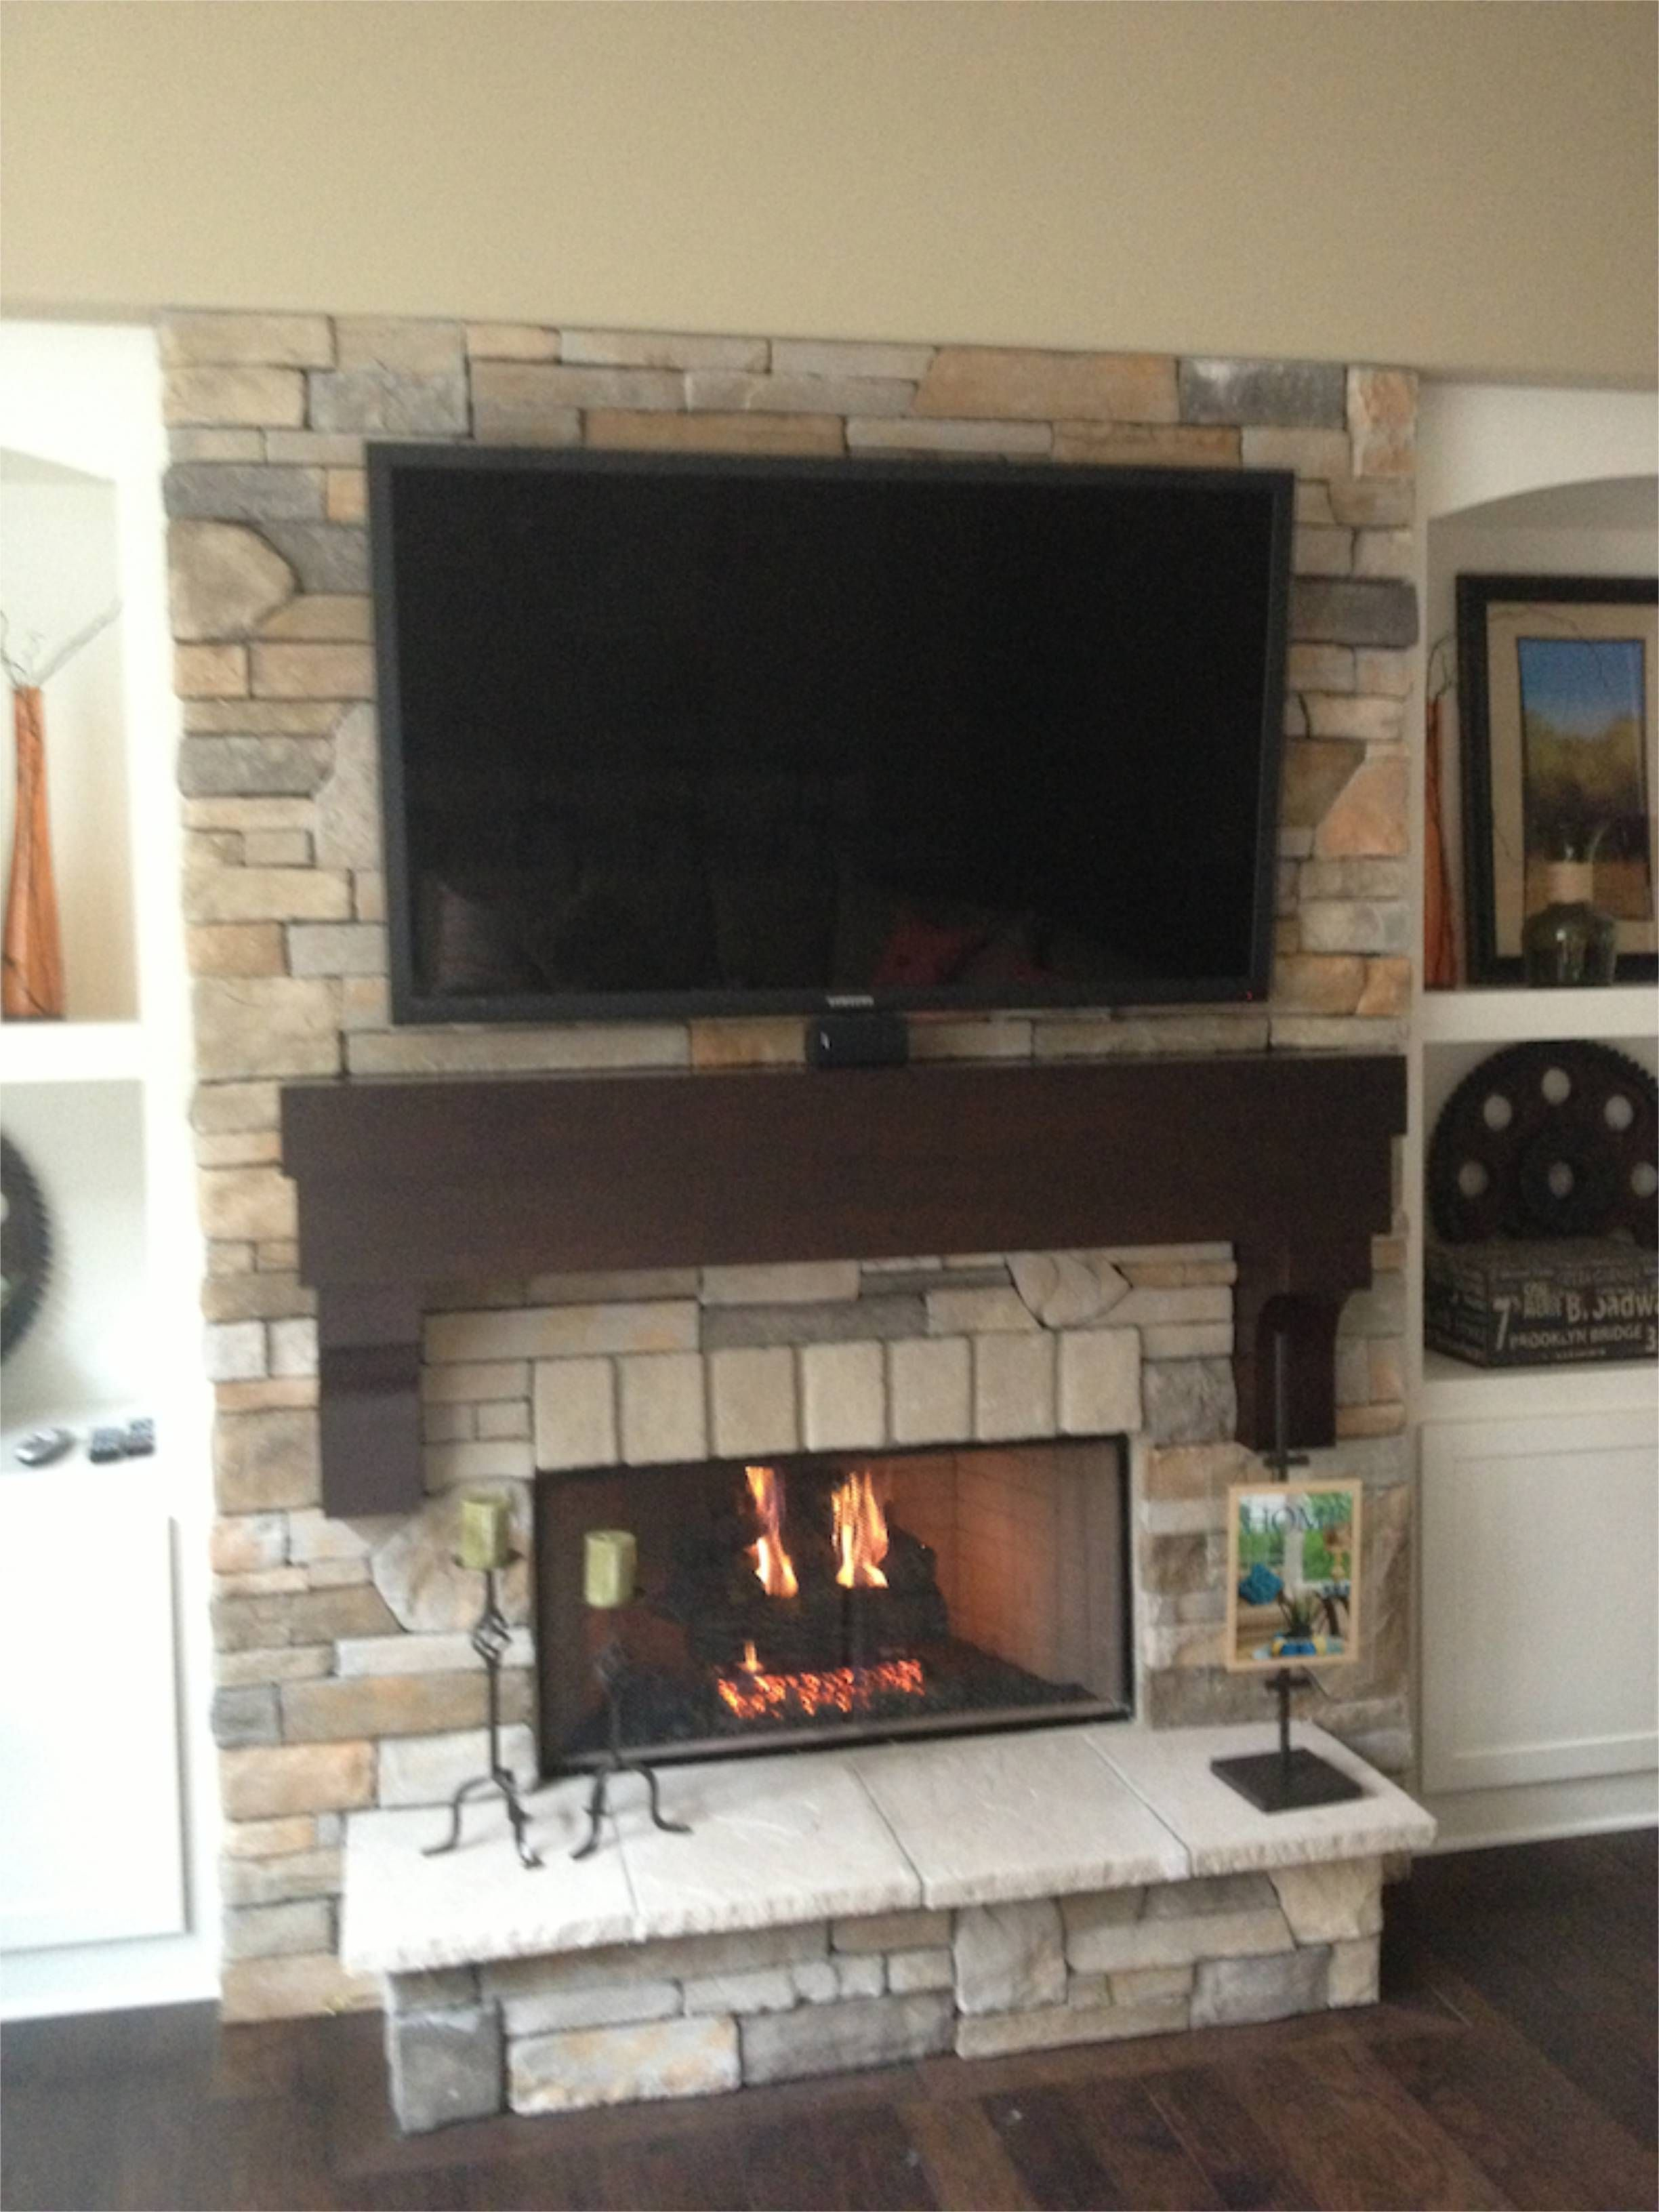 Gas Log Fireplace Insert | ... Fireplace Company - Fireplace Inserts & Gas Logs - Builder